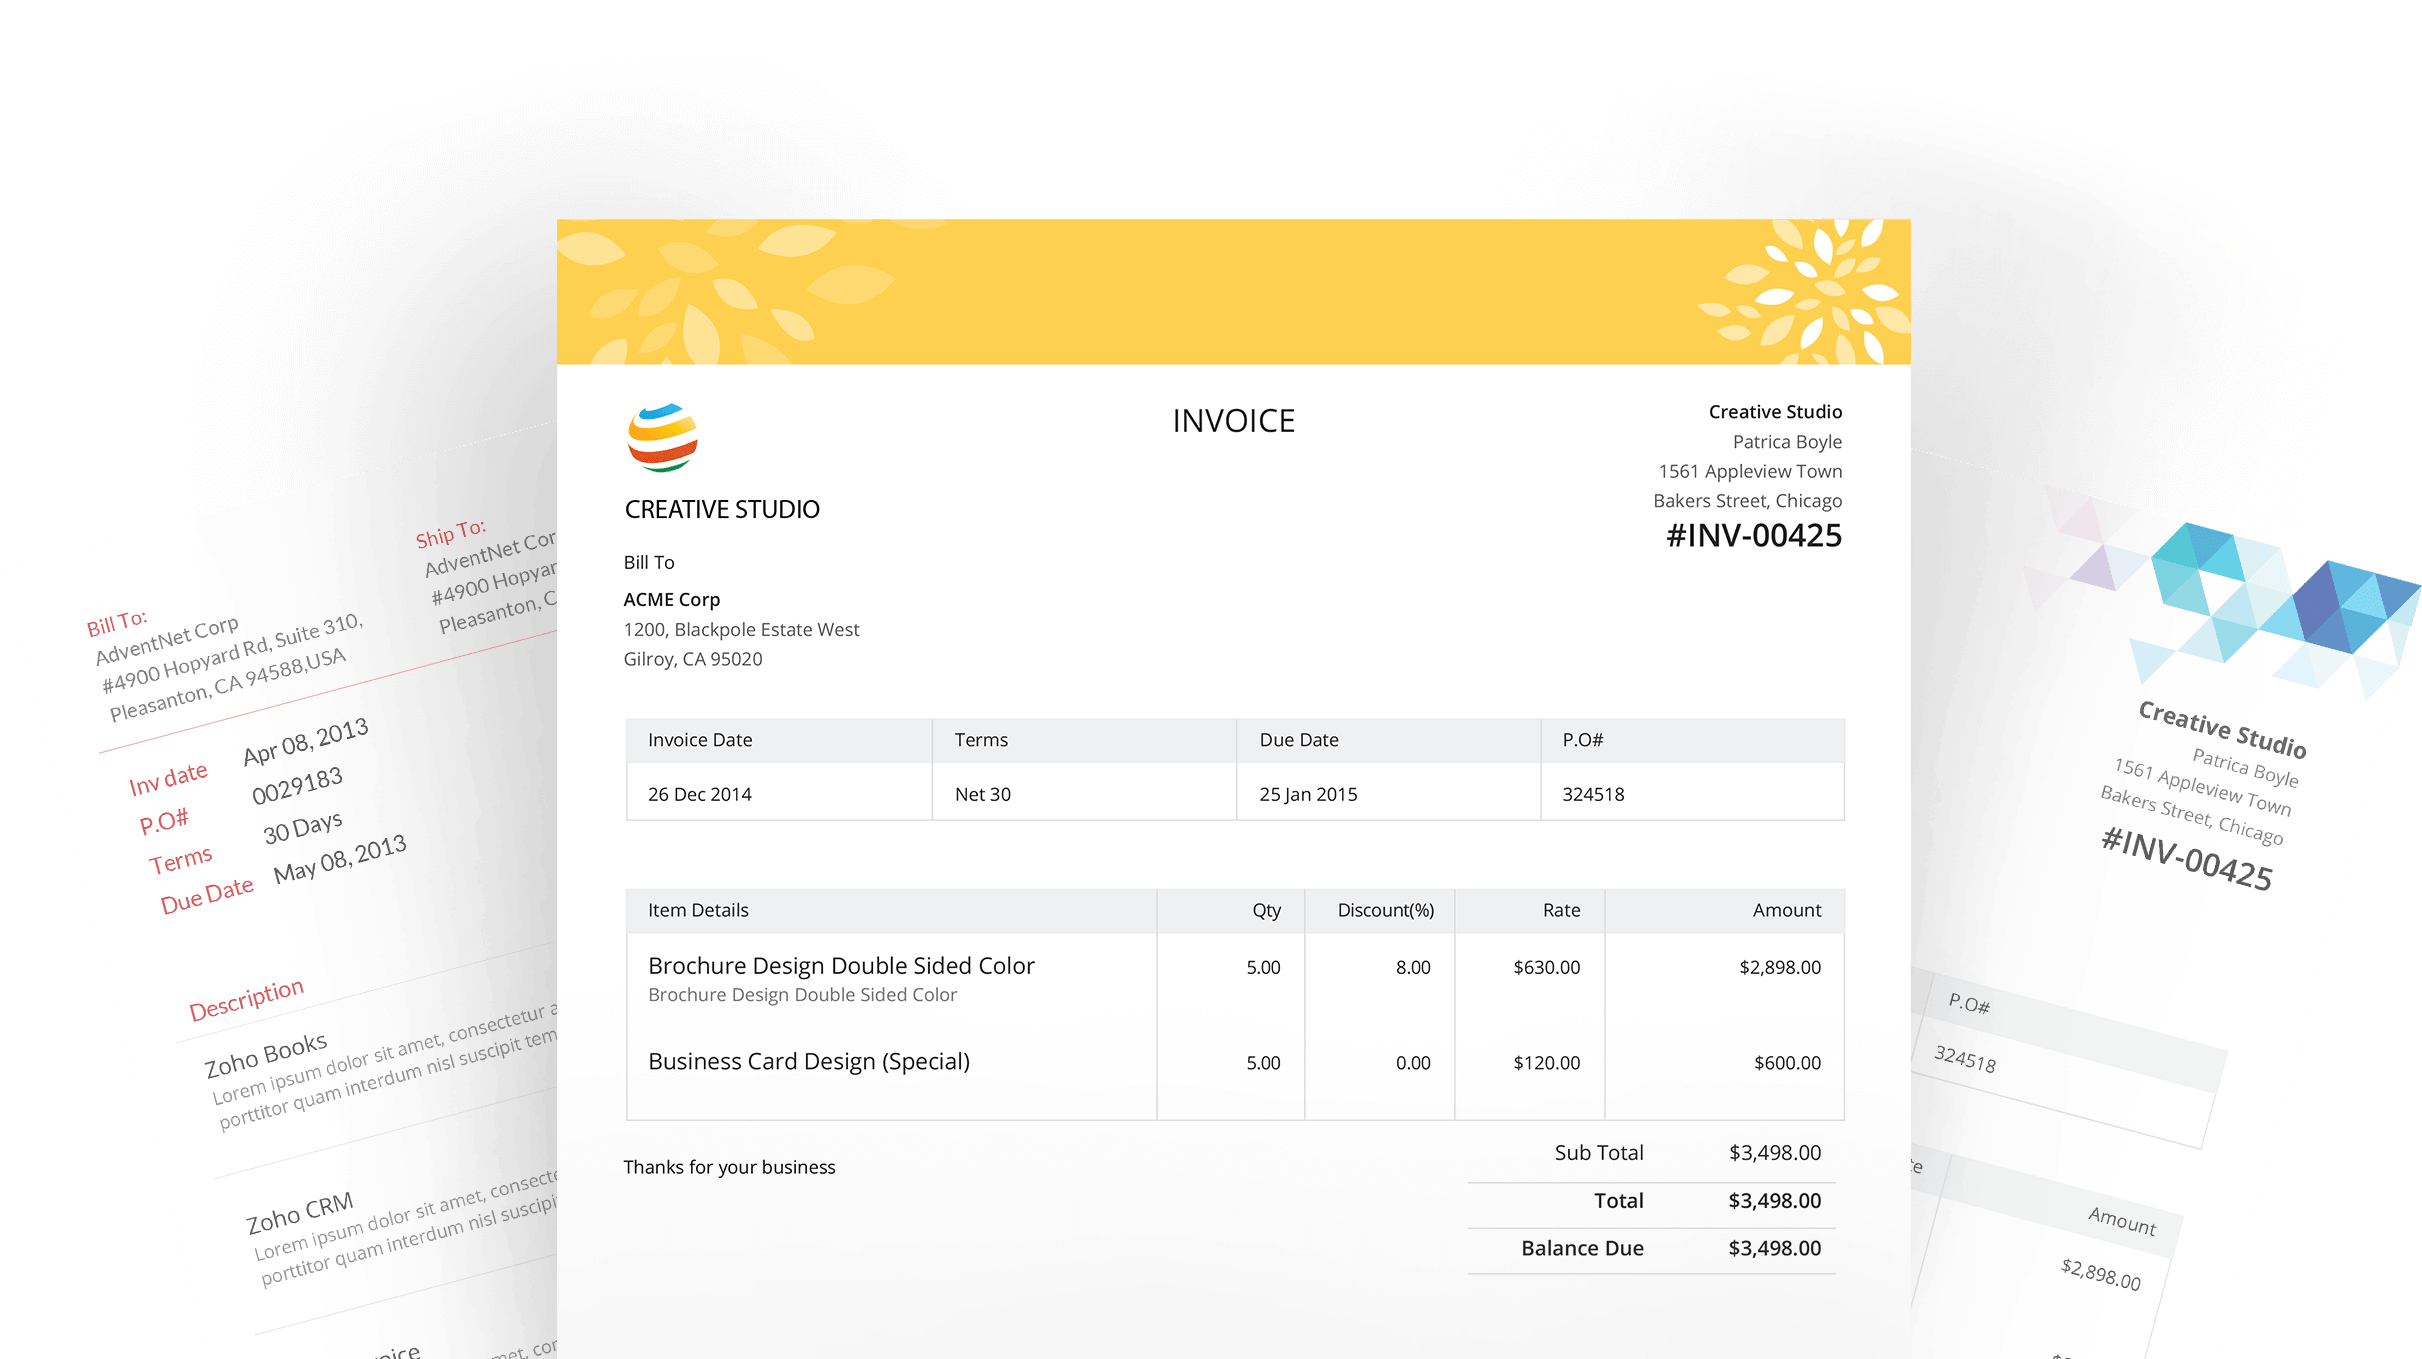 Zoho invoice template 28 images invoice template zoho for Zoho invoice download